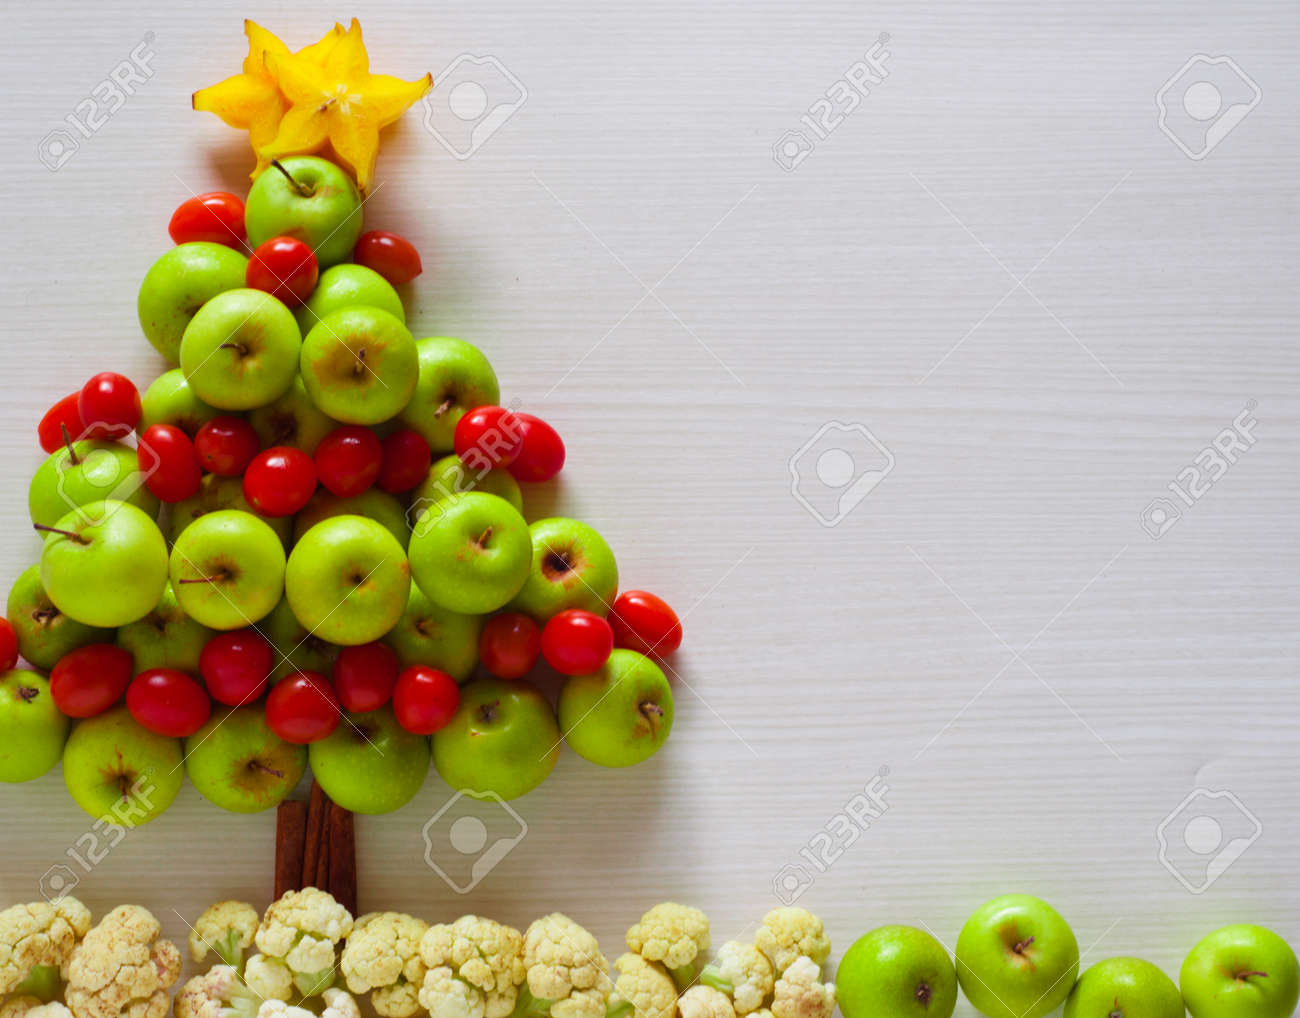 Christmas Tree Fruit.Christmas Tree Decorations Made From Apple Cherry Tomatoes